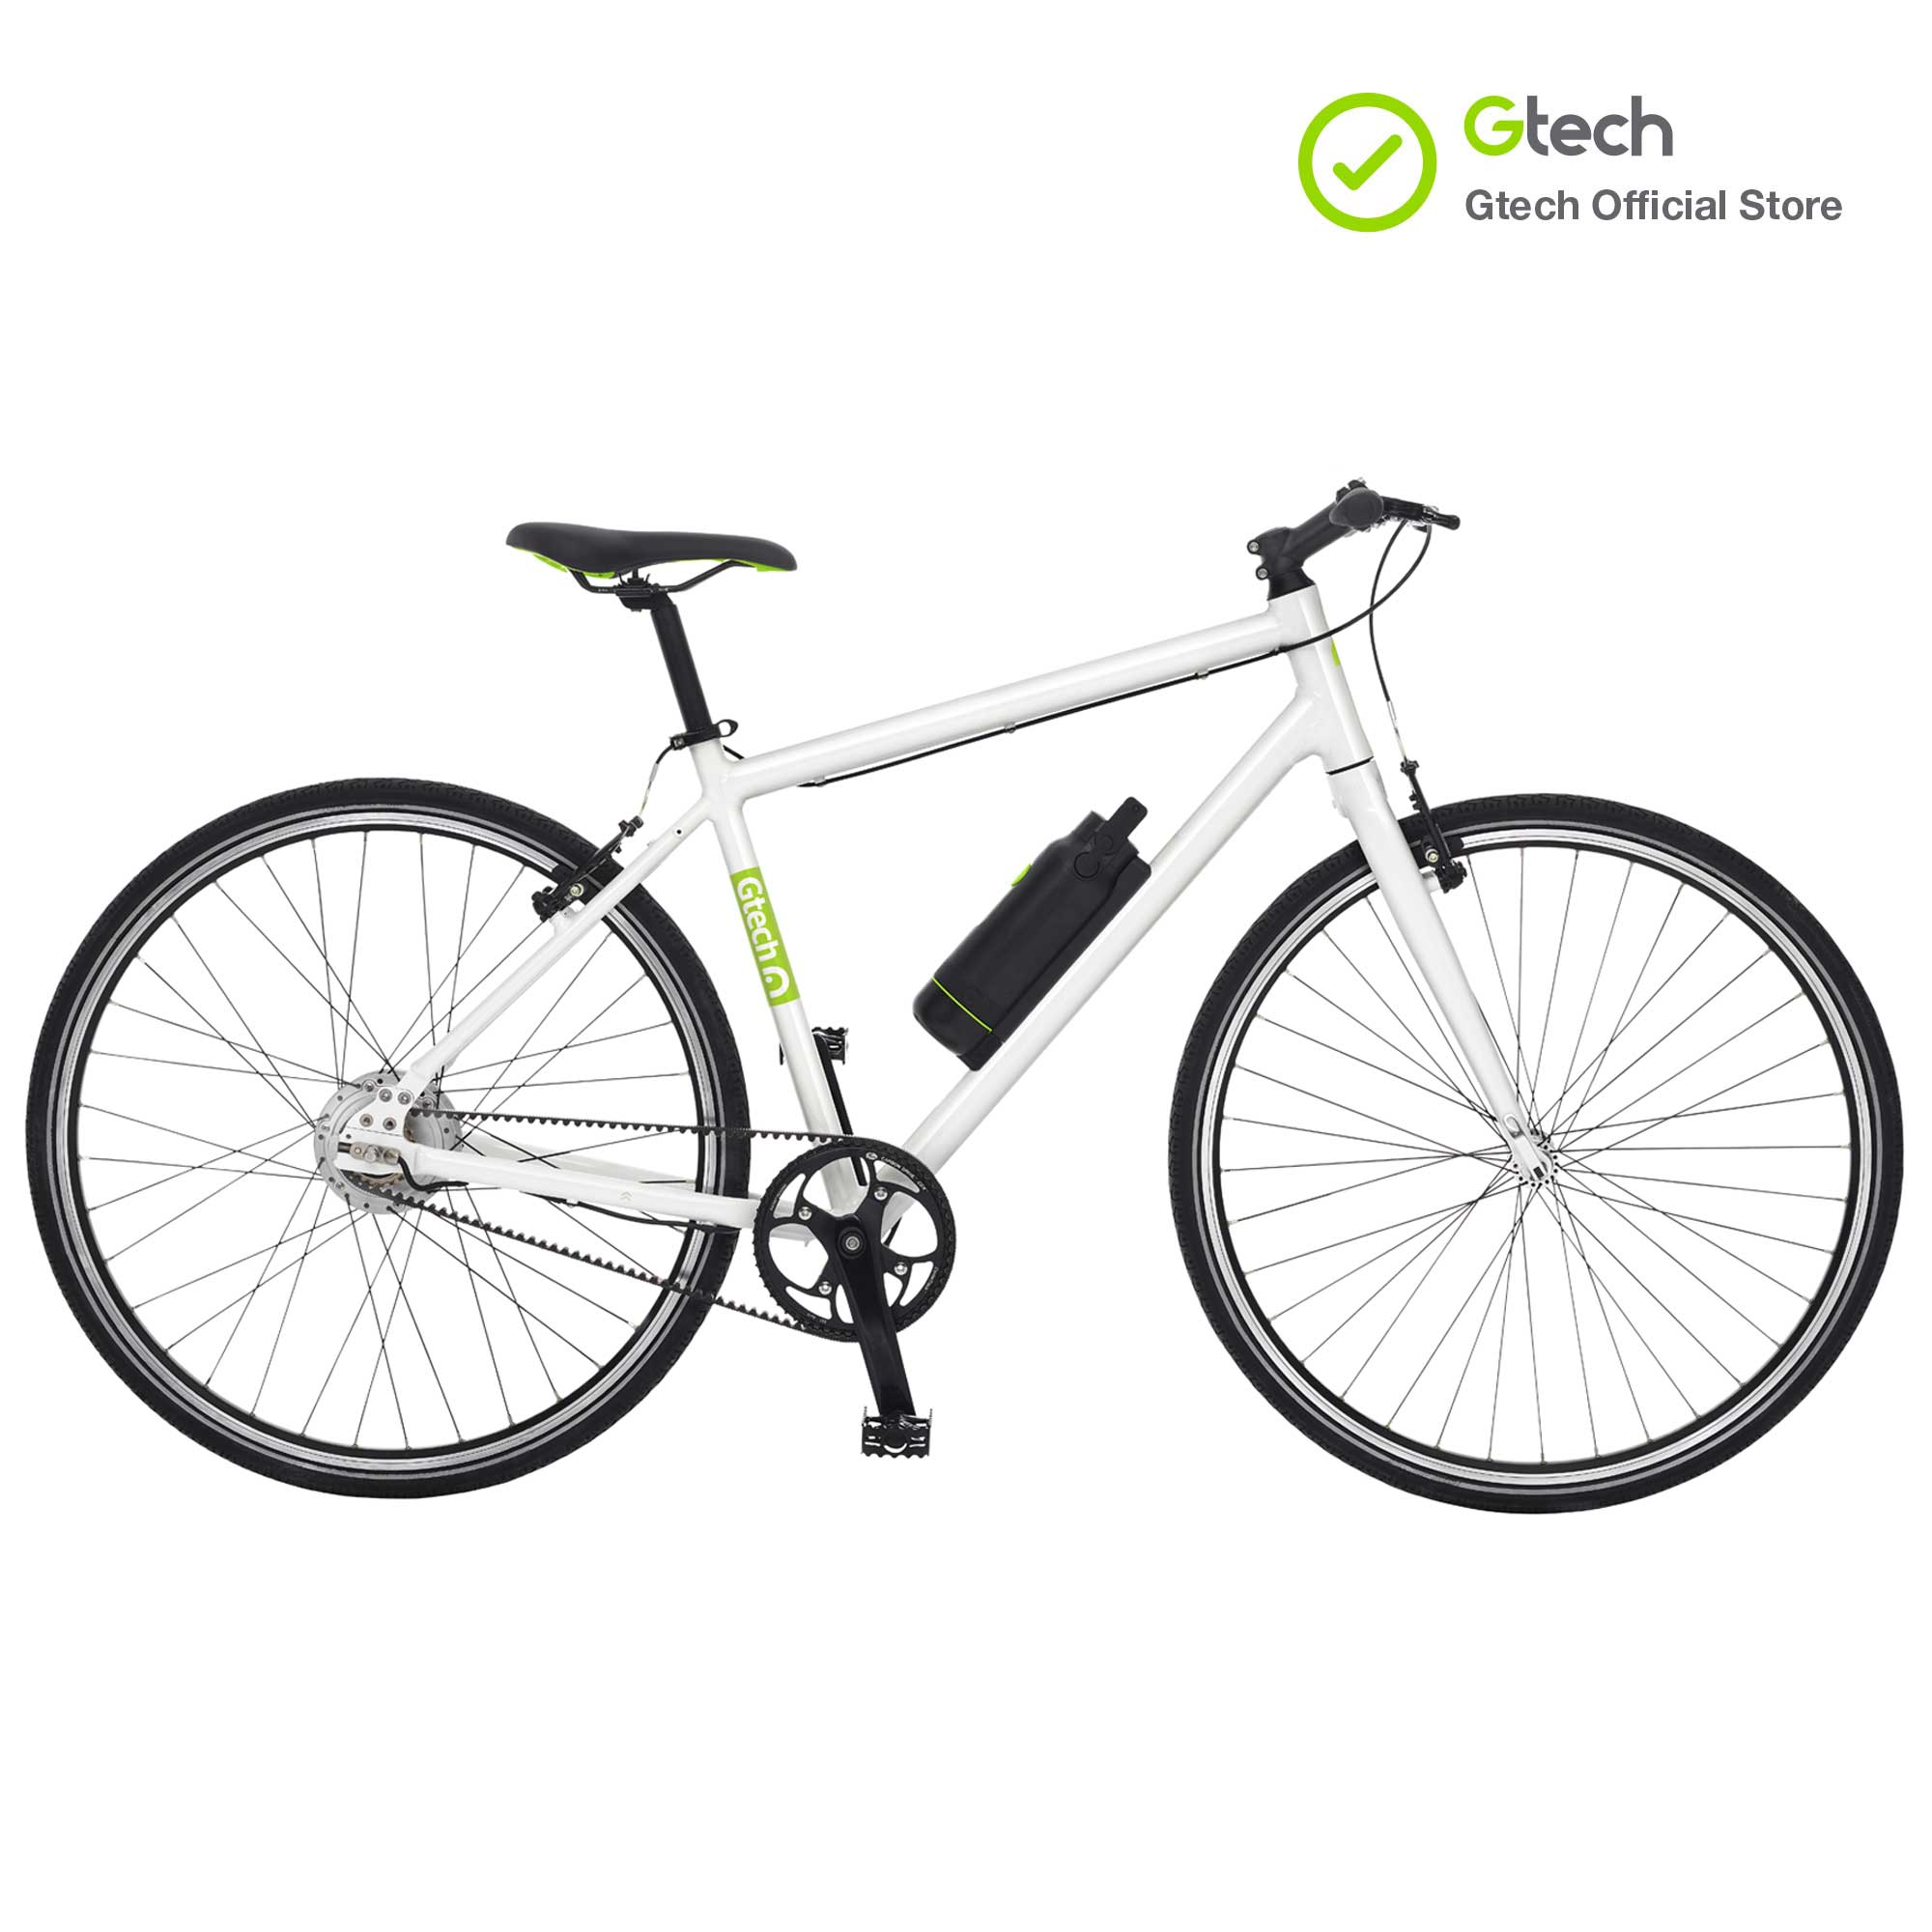 e49a436210e Gtech, the British startup and renowned purveyor of cordless vacuum  cleaners and garden trimmers, stormed into the ebike game a couple of years  ago with a ...